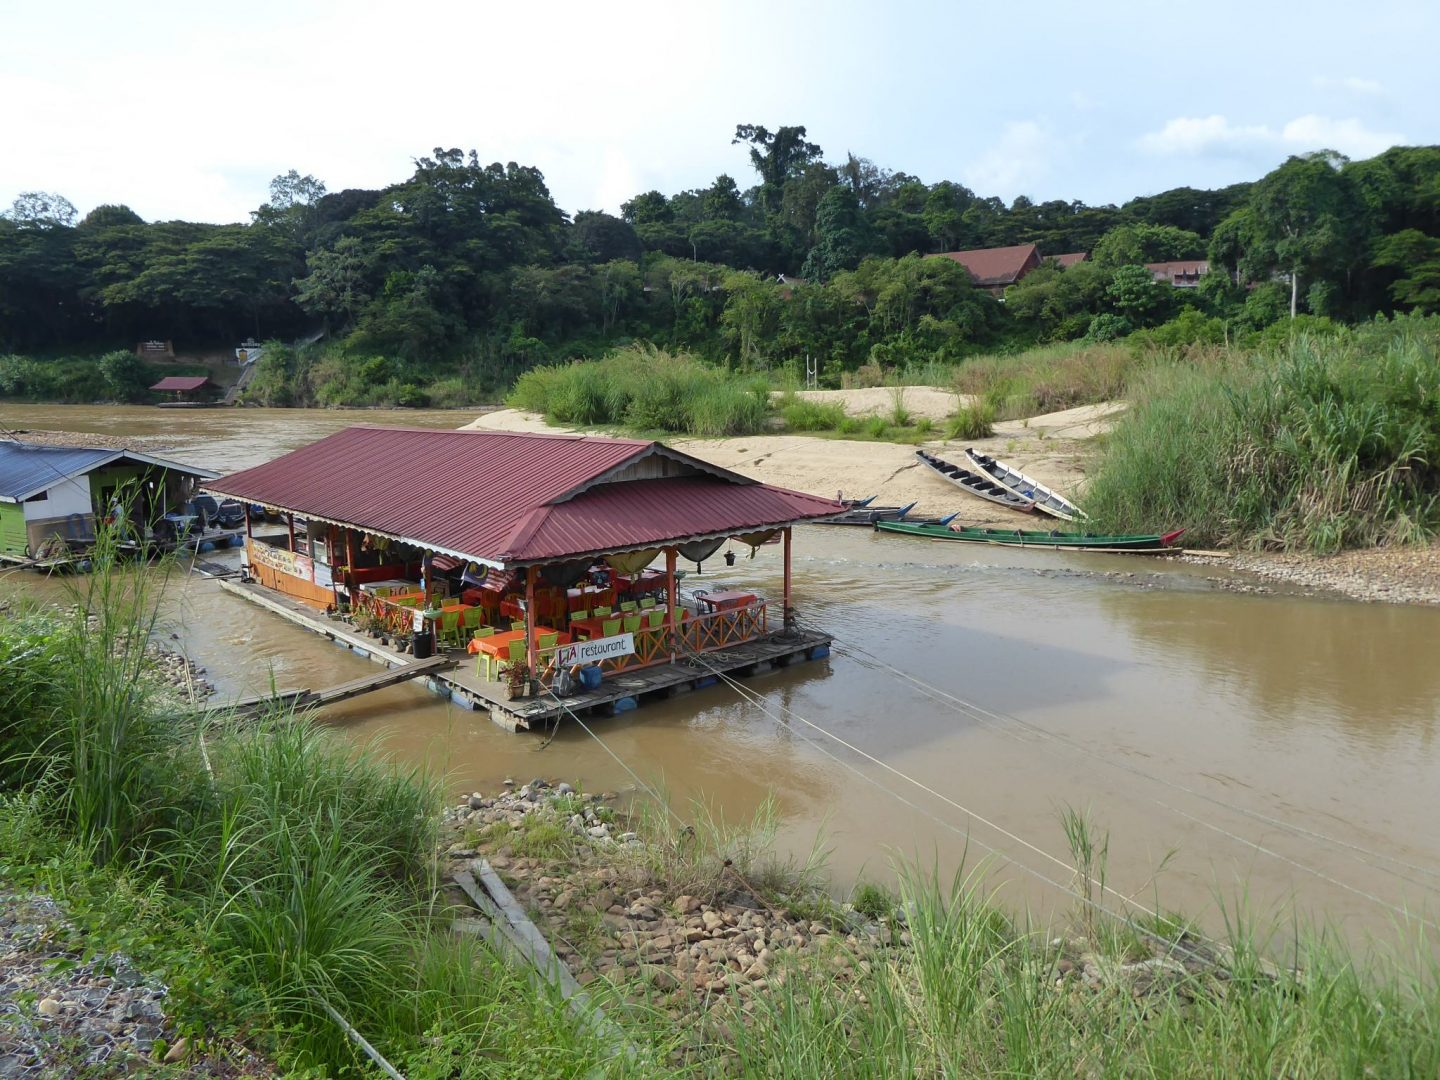 Floating Restaurant in Kuala Tahan  - restaurant floating on the river